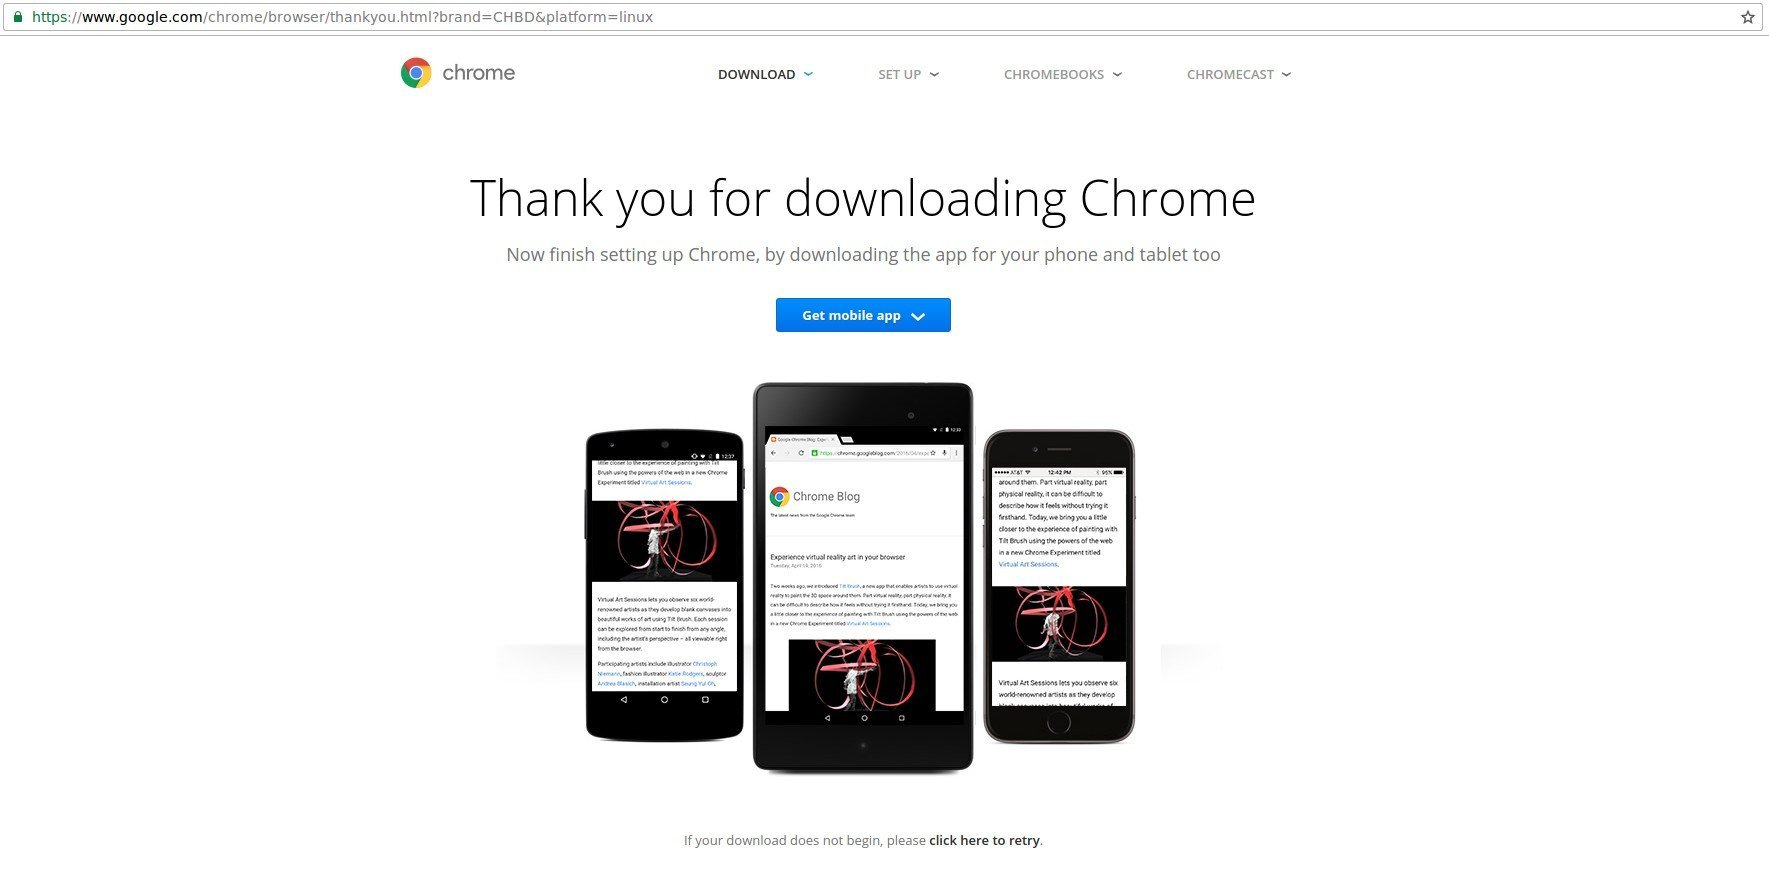 Chrome Offline Installer for Windows, Mac, Android, and Linux